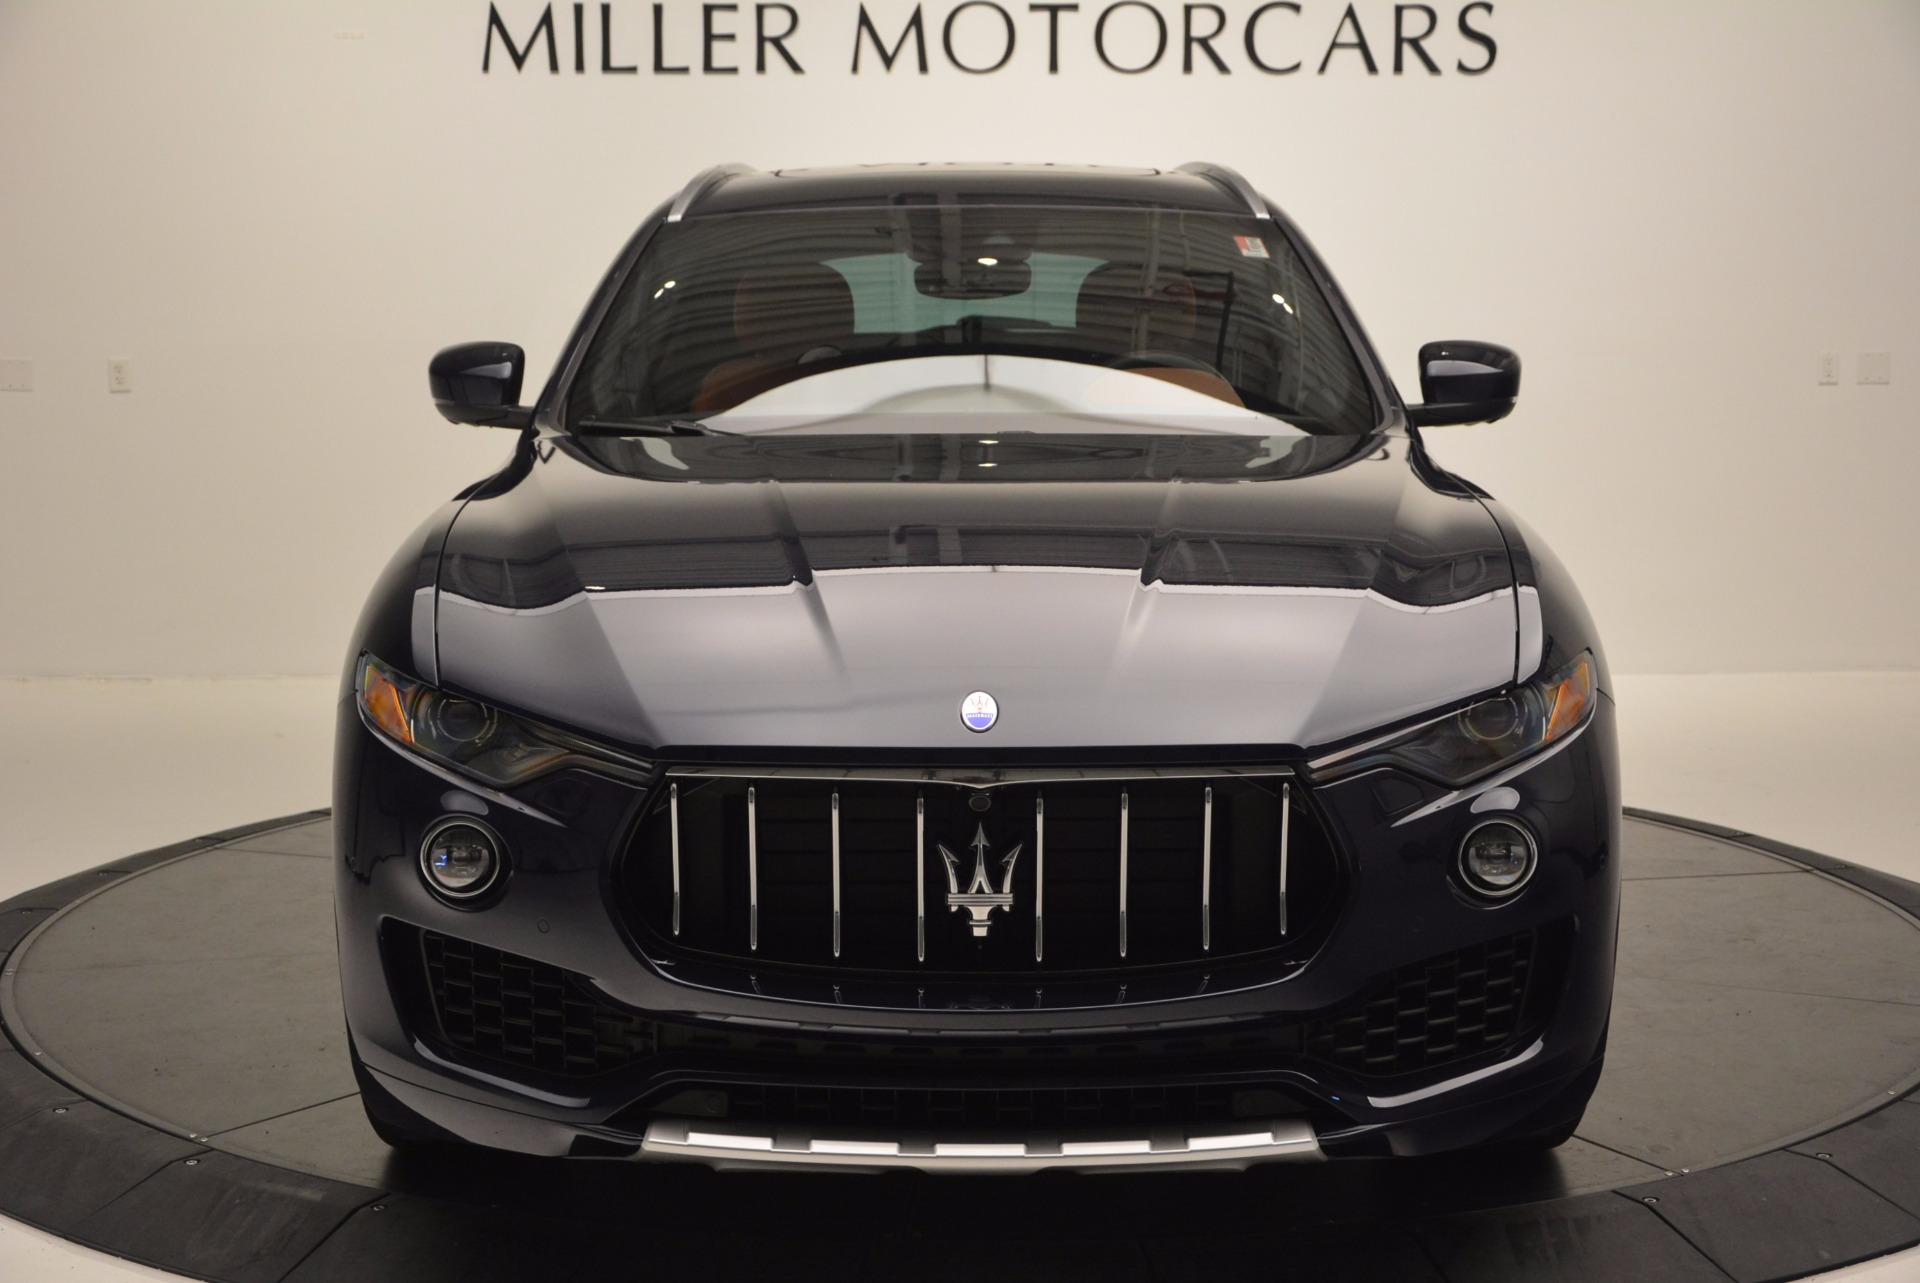 Used 2017 Maserati Levante S For Sale In Greenwich, CT. Alfa Romeo of Greenwich, 7331 752_p14